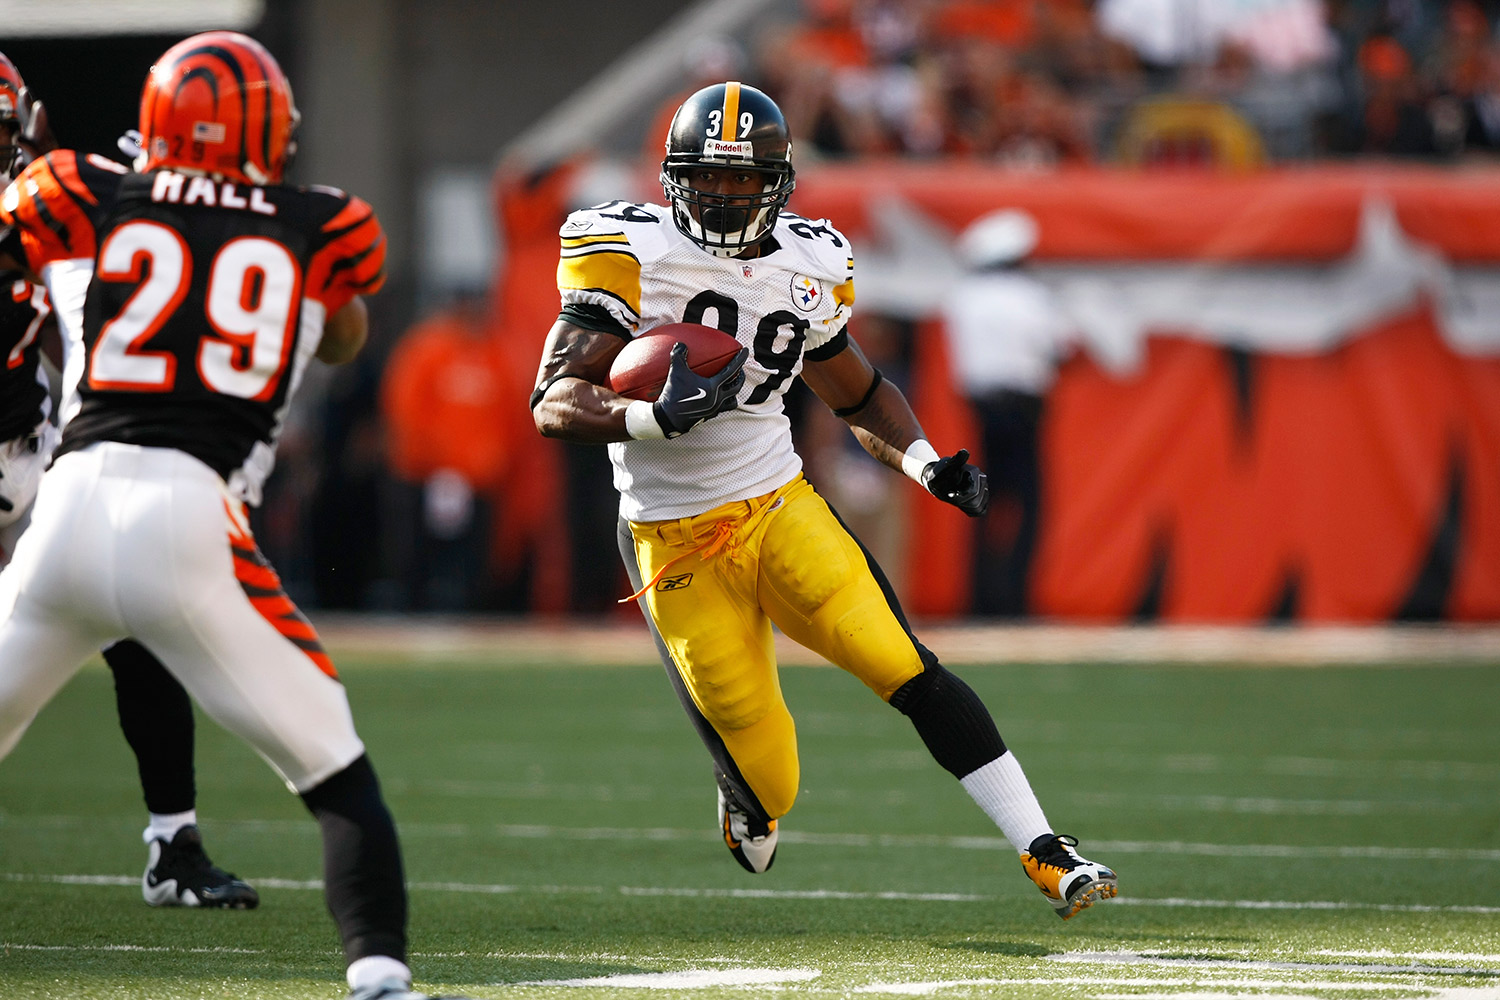 After going undrafted in 2004, Parker signed with the Pittsburgh Steelers, where he would go on to learn the game as a backup behind legends like Jerome Bettis. Parker was selected to the Pro-Bowl twice and holds the record for the longest run in a Super Bowl (75 yards). (*Parker's time was calculated before the NFL implemented electronic timing to improve accuracy.)